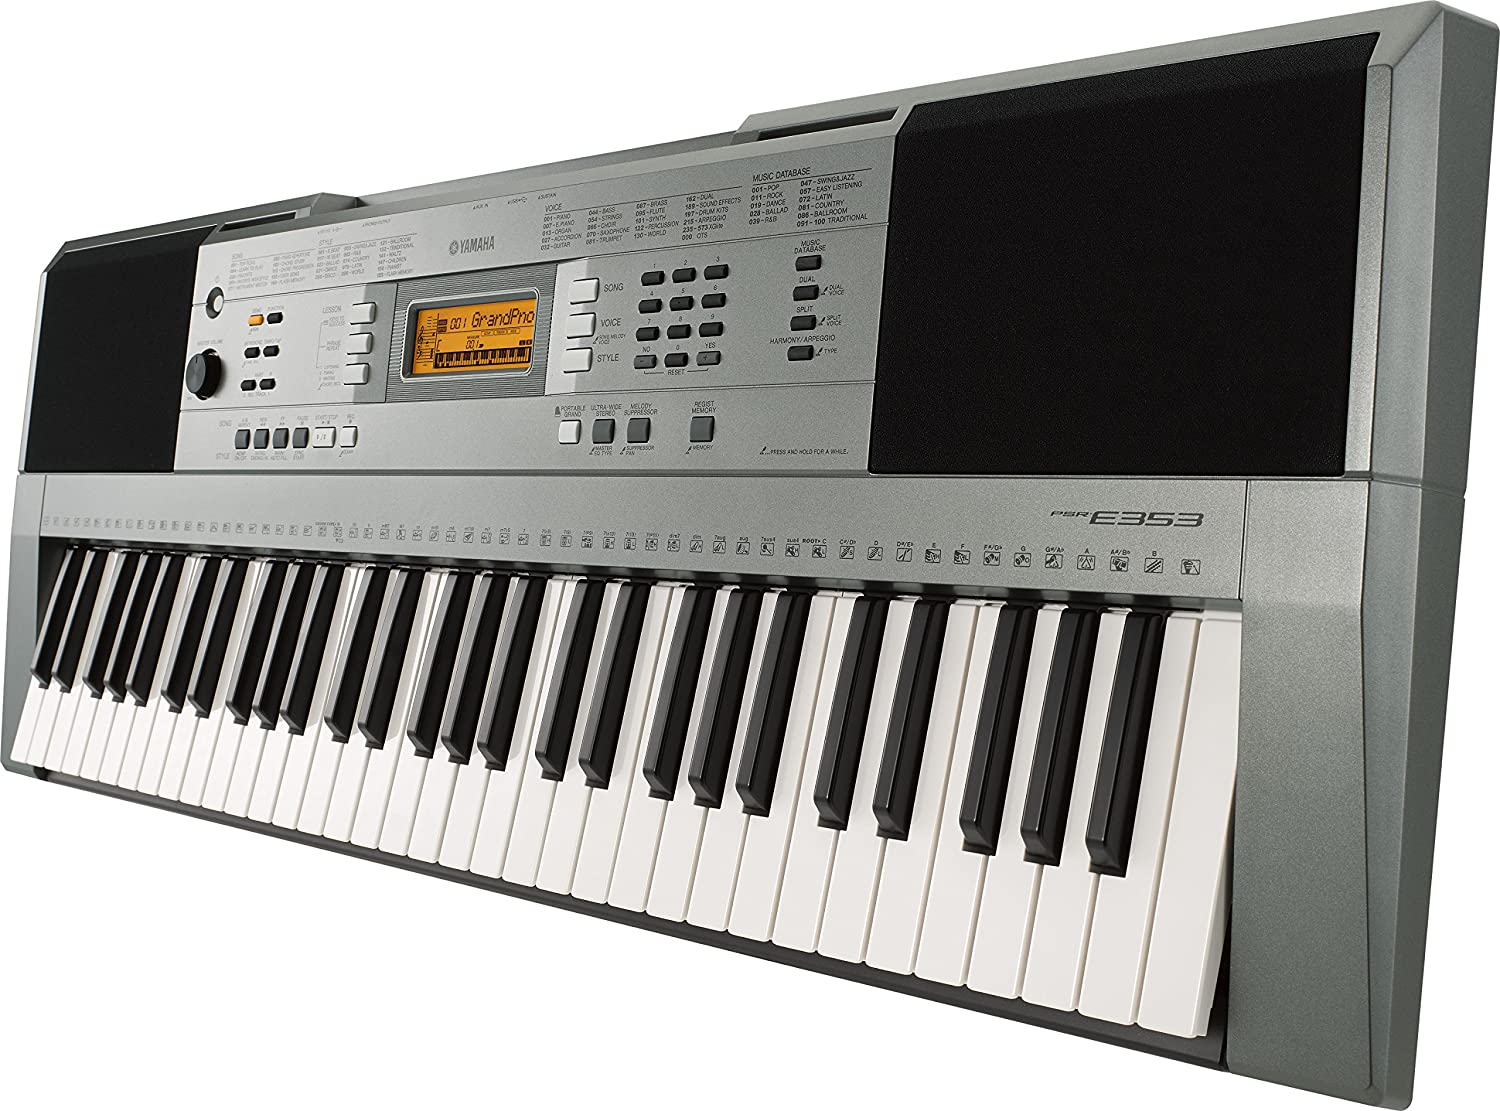 Image result for yamaha keyboard PSR e353